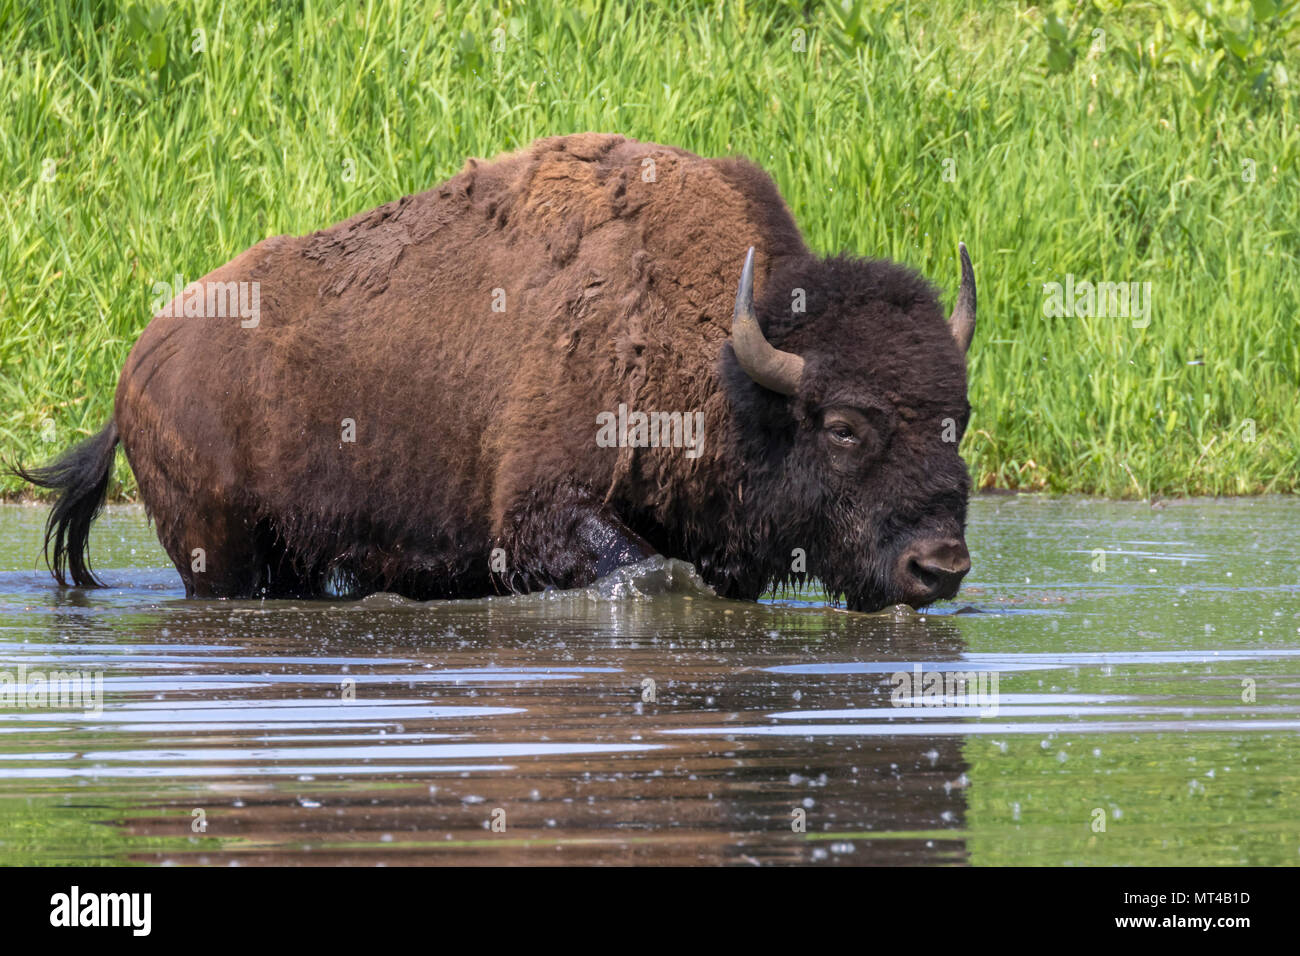 American bison (Bison bison) bathing in a lake during hot summer day, Iowa, USA. - Stock Image